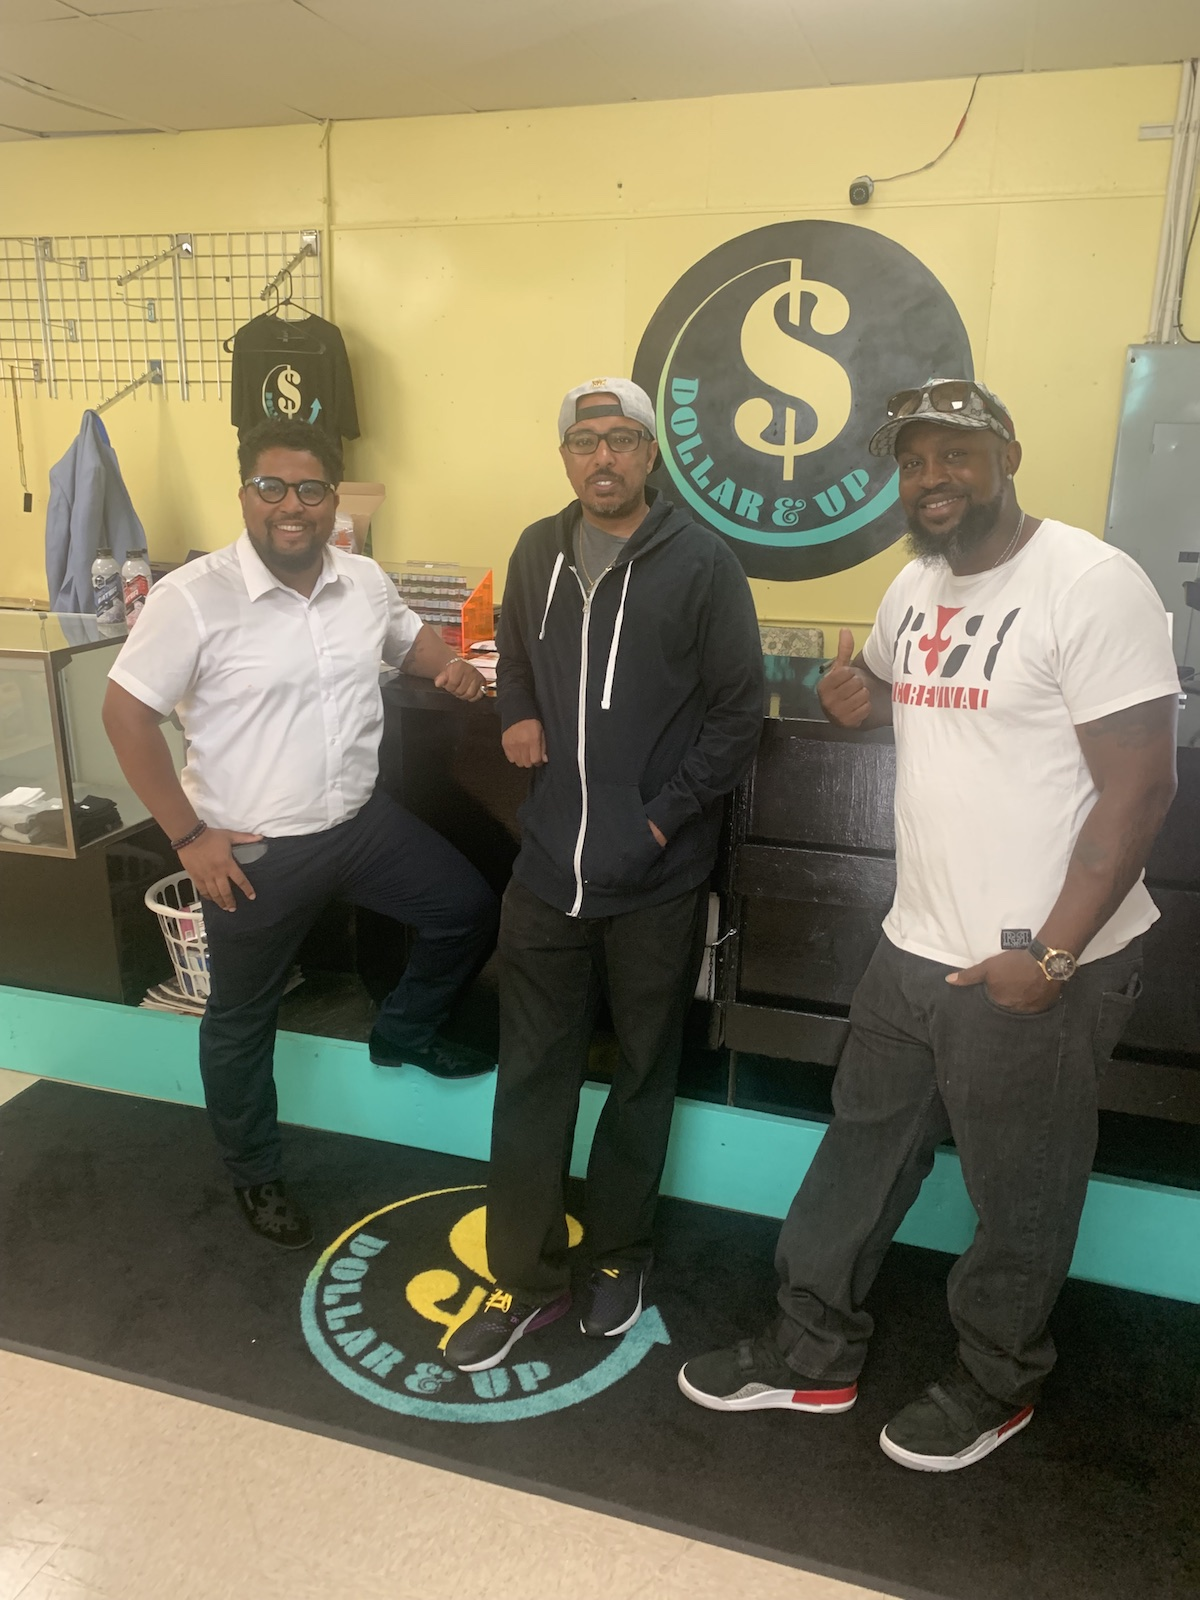 Dollar & Up co-owners DeParis Frazier, Nathaniel Haile and Harrison Hollivay.